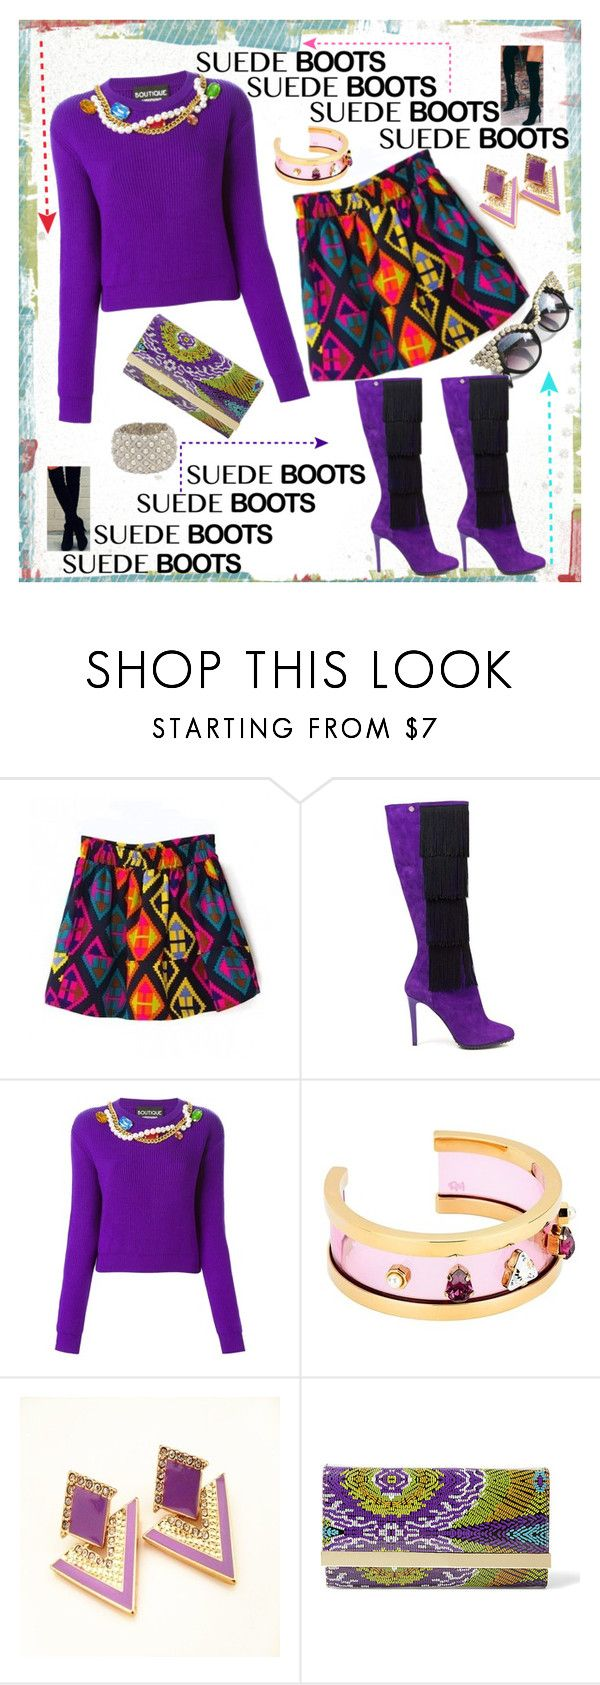 """""""STyled Suede Boots"""" by westcoastcharmed ❤ liked on Polyvore featuring Boutique Moschino, Maria Francesca Pepe, Retrò, Steve Madden and suedeboots"""